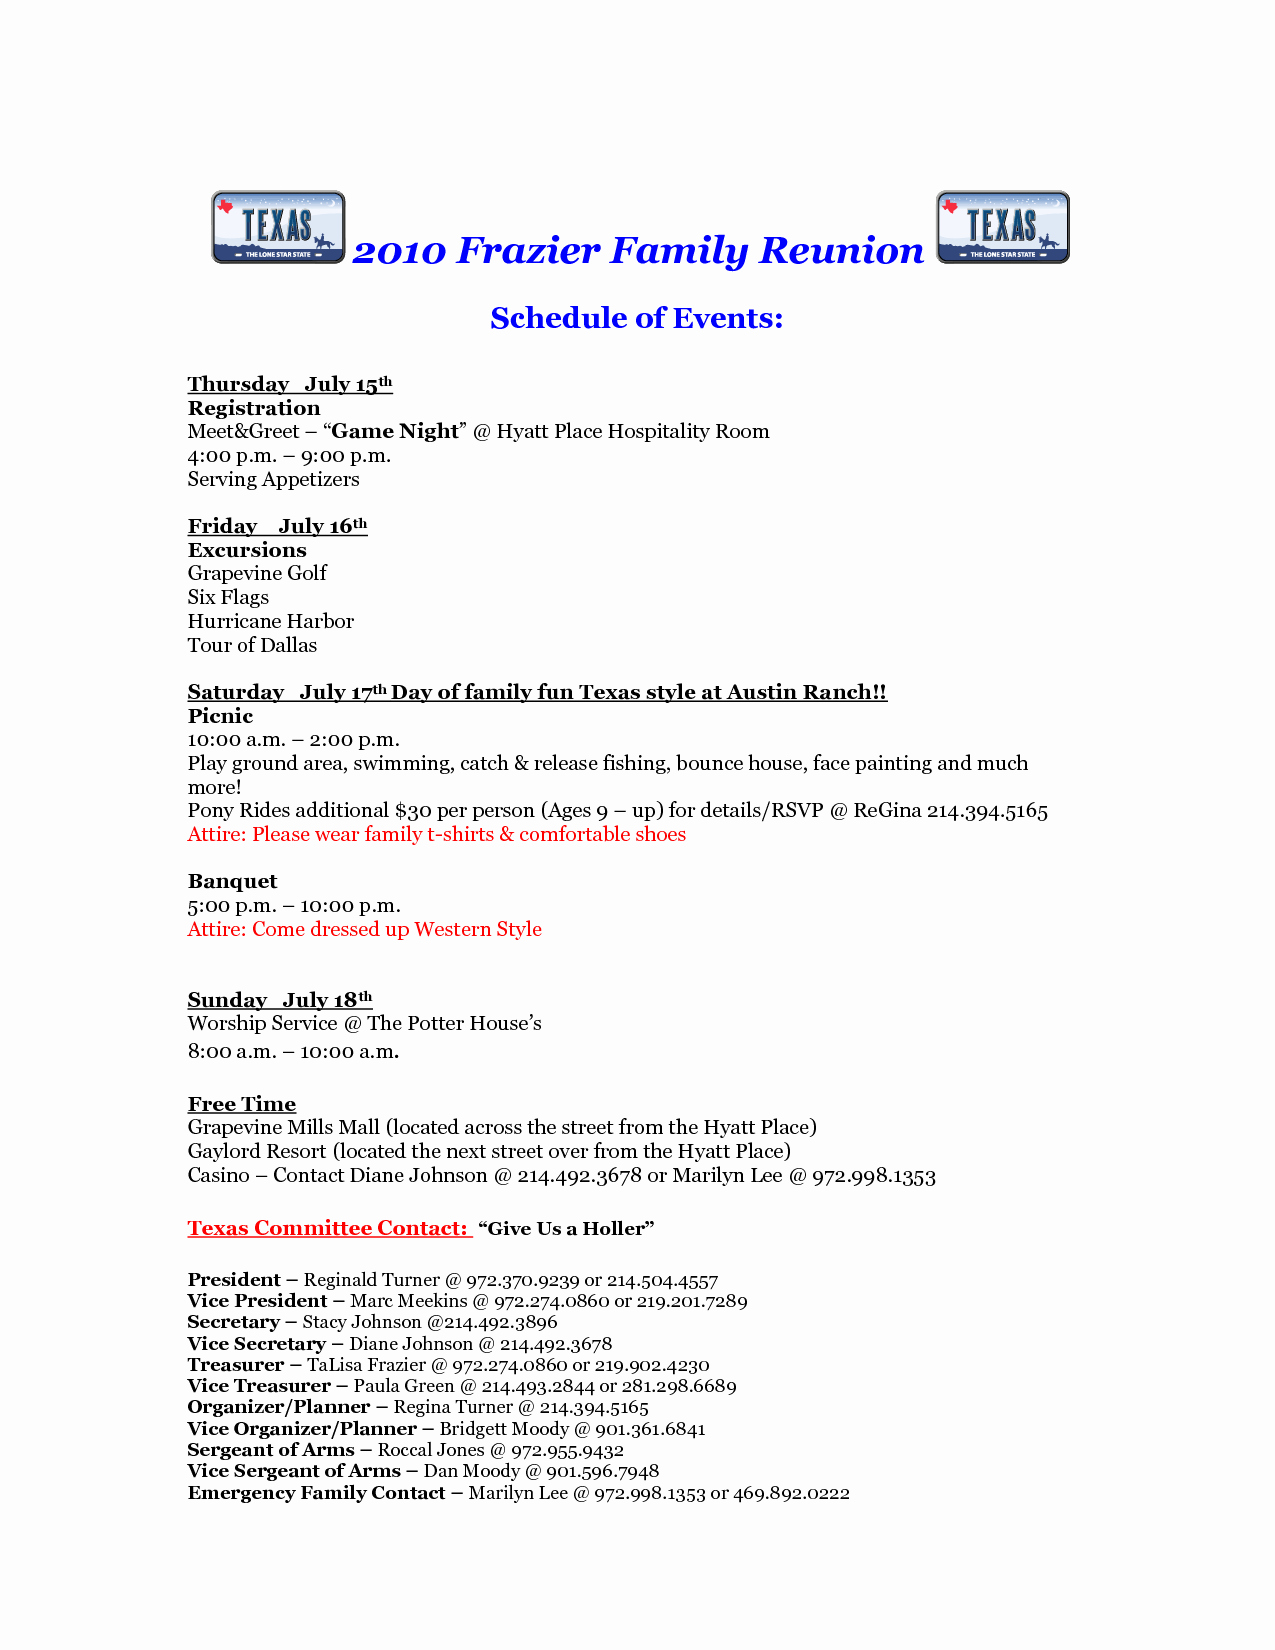 Family Reunion Letter Template Luxury Free Printable Family Reunion Letters